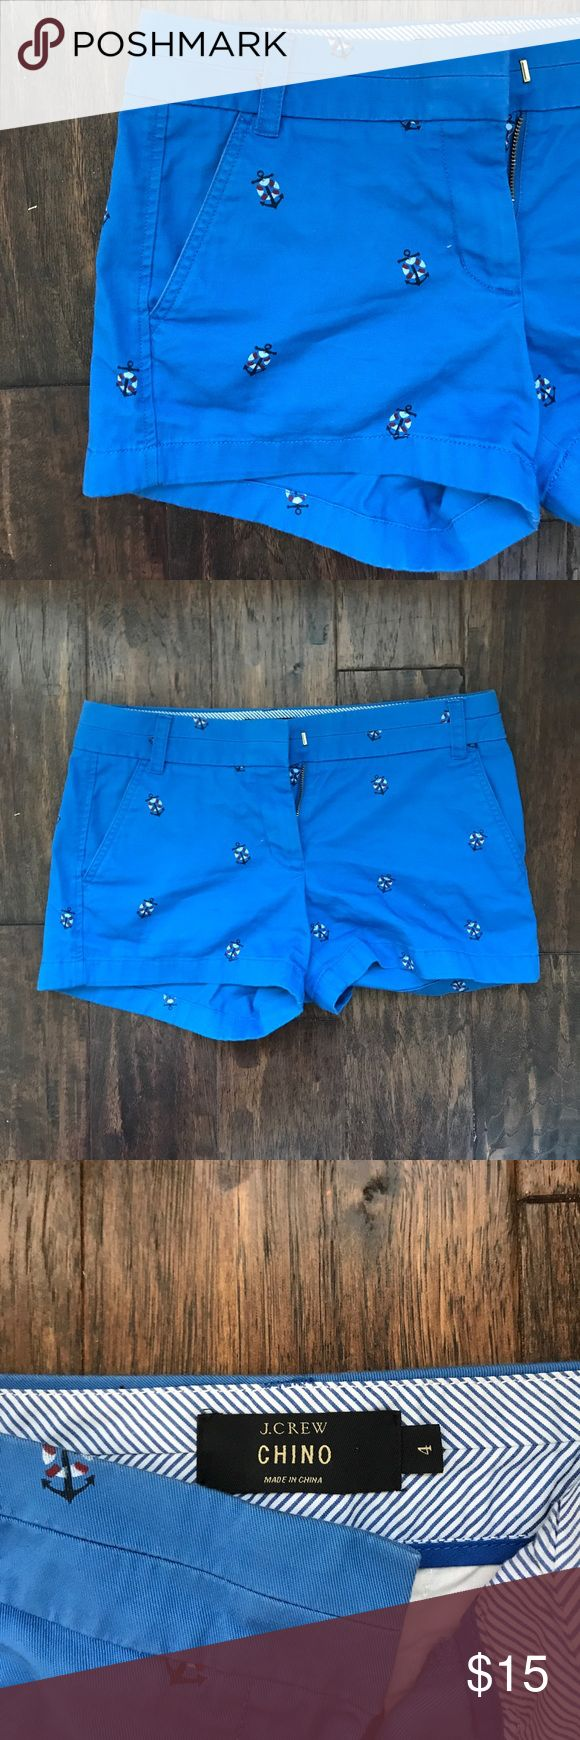 J. Crew chino nautical shorts Good condition chino shorts in blue with anchors. J. Crew Shorts